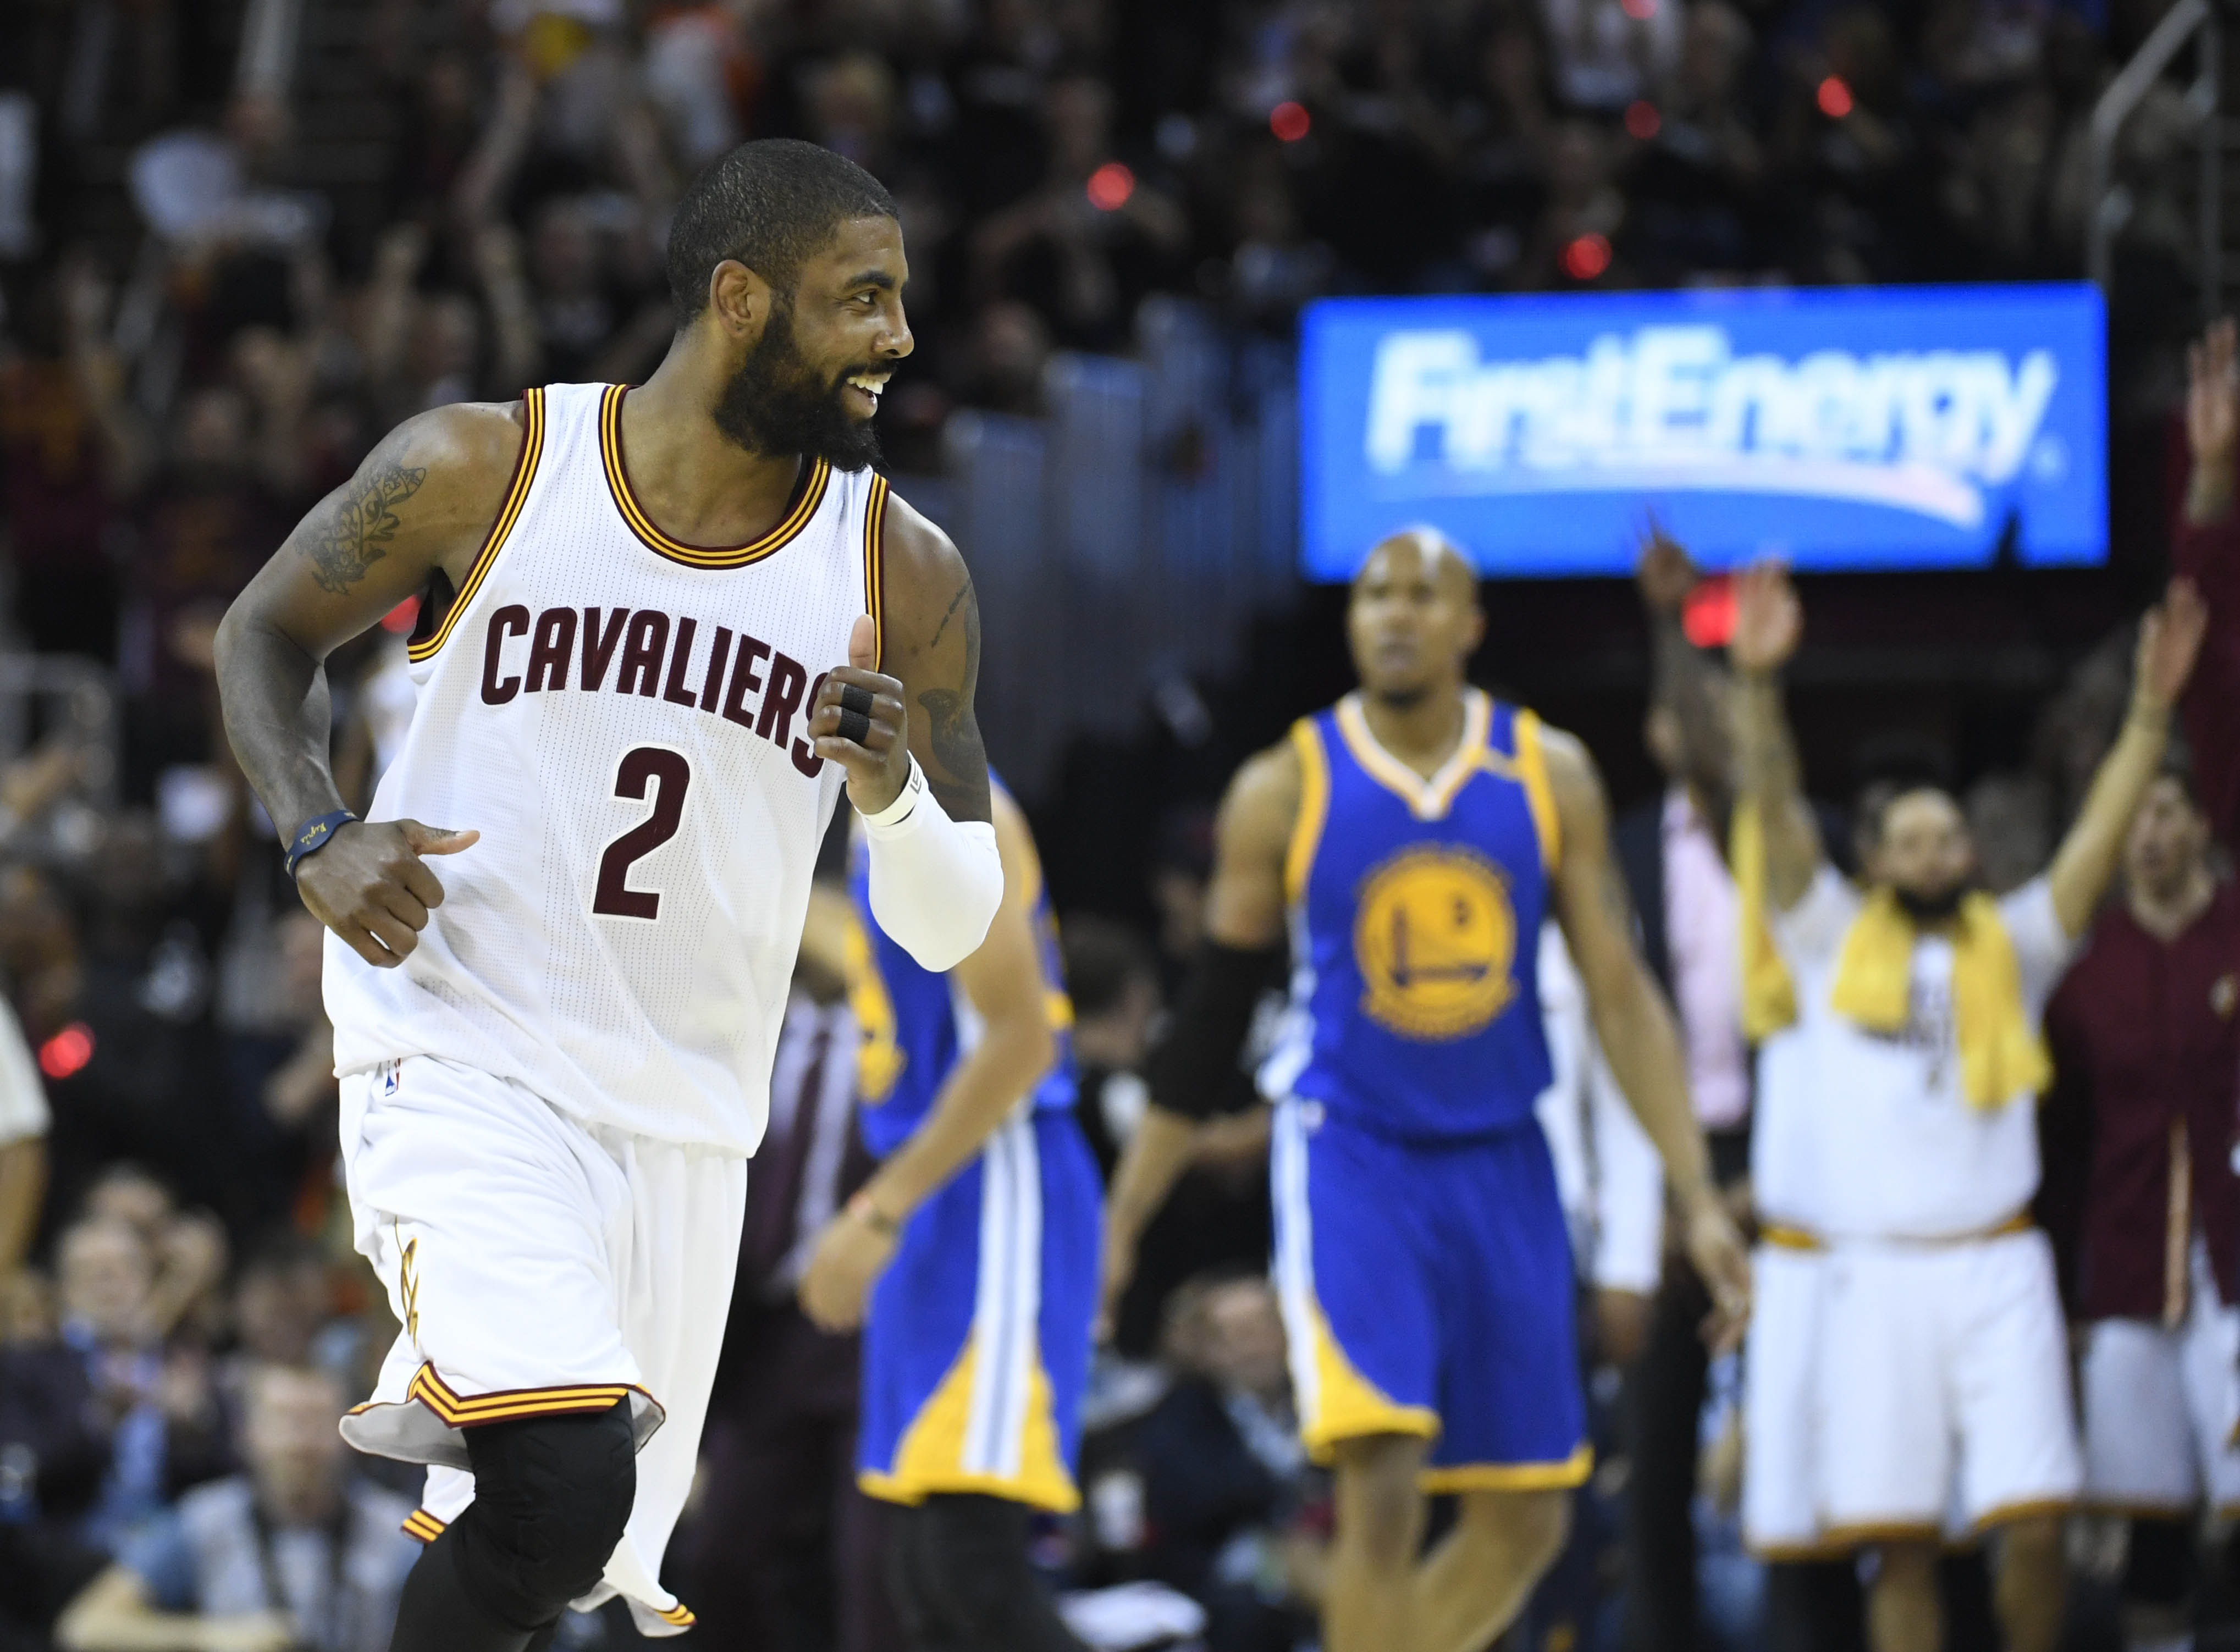 Cleveland Cavaliers vs. GS Warriors Game 4: What We Learned